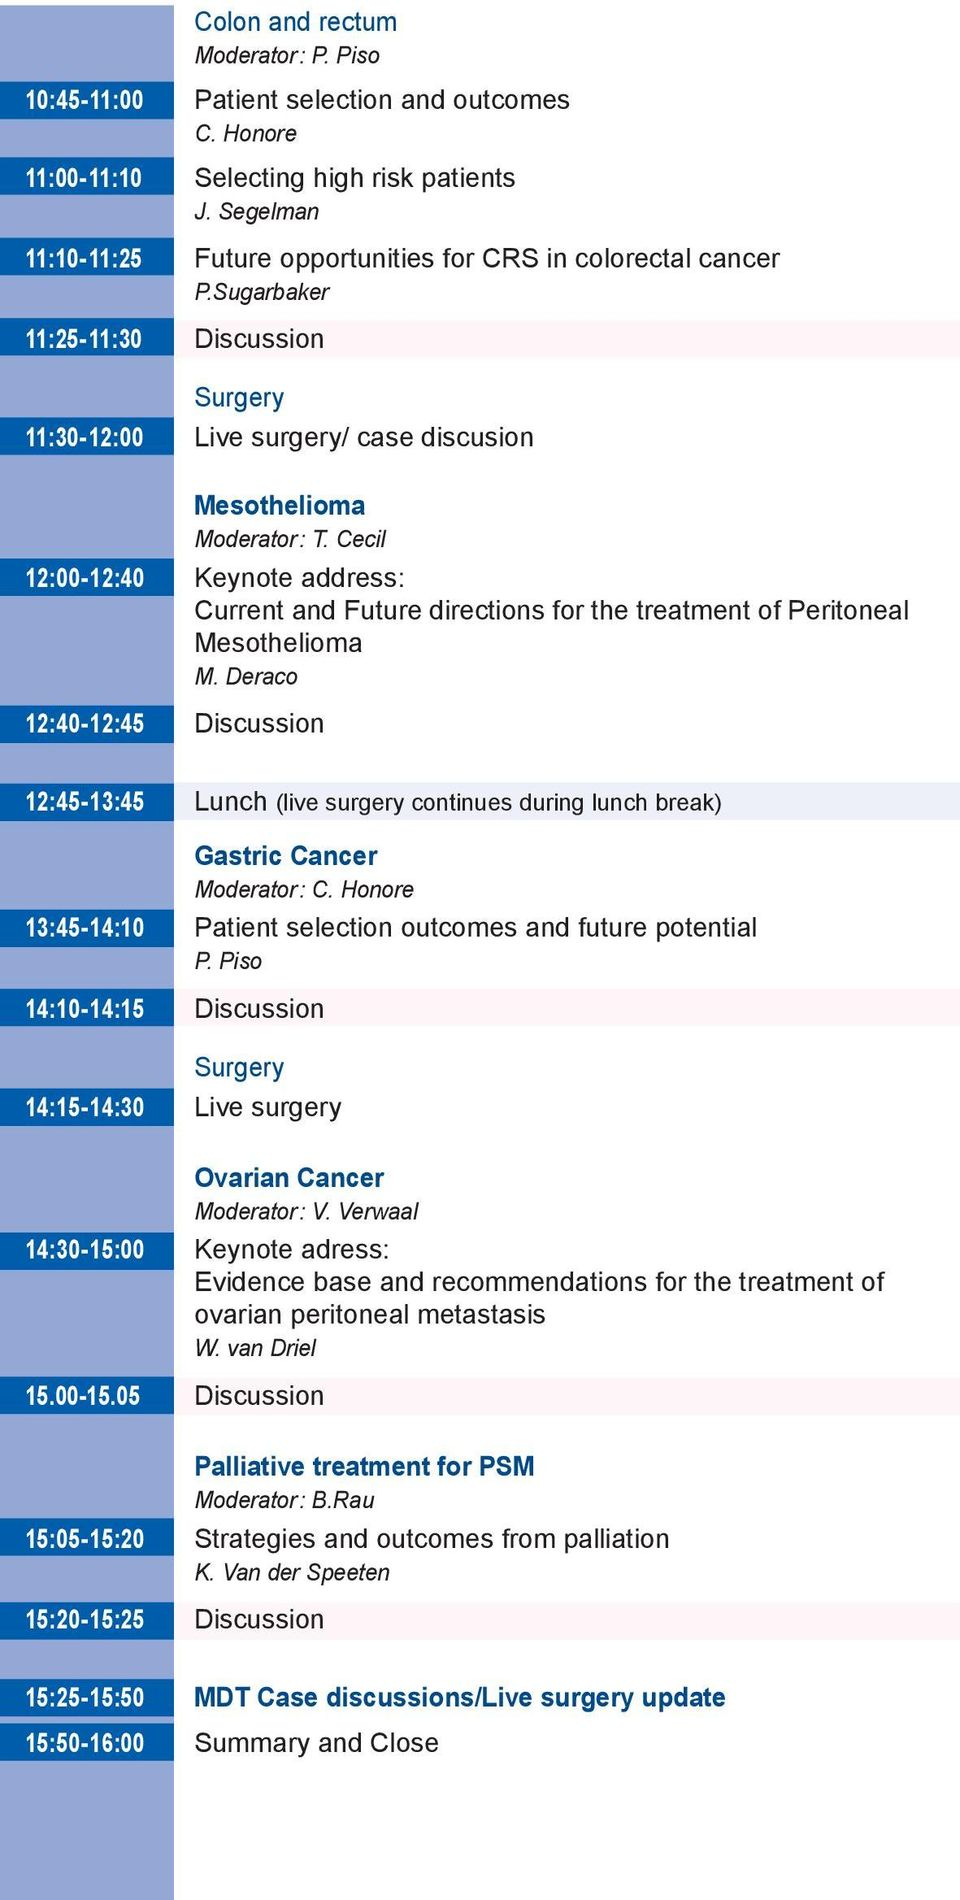 Cecil 12:00-12:40 Keynote address: Current and Future directions for the treatment of Peritoneal Mesothelioma M.